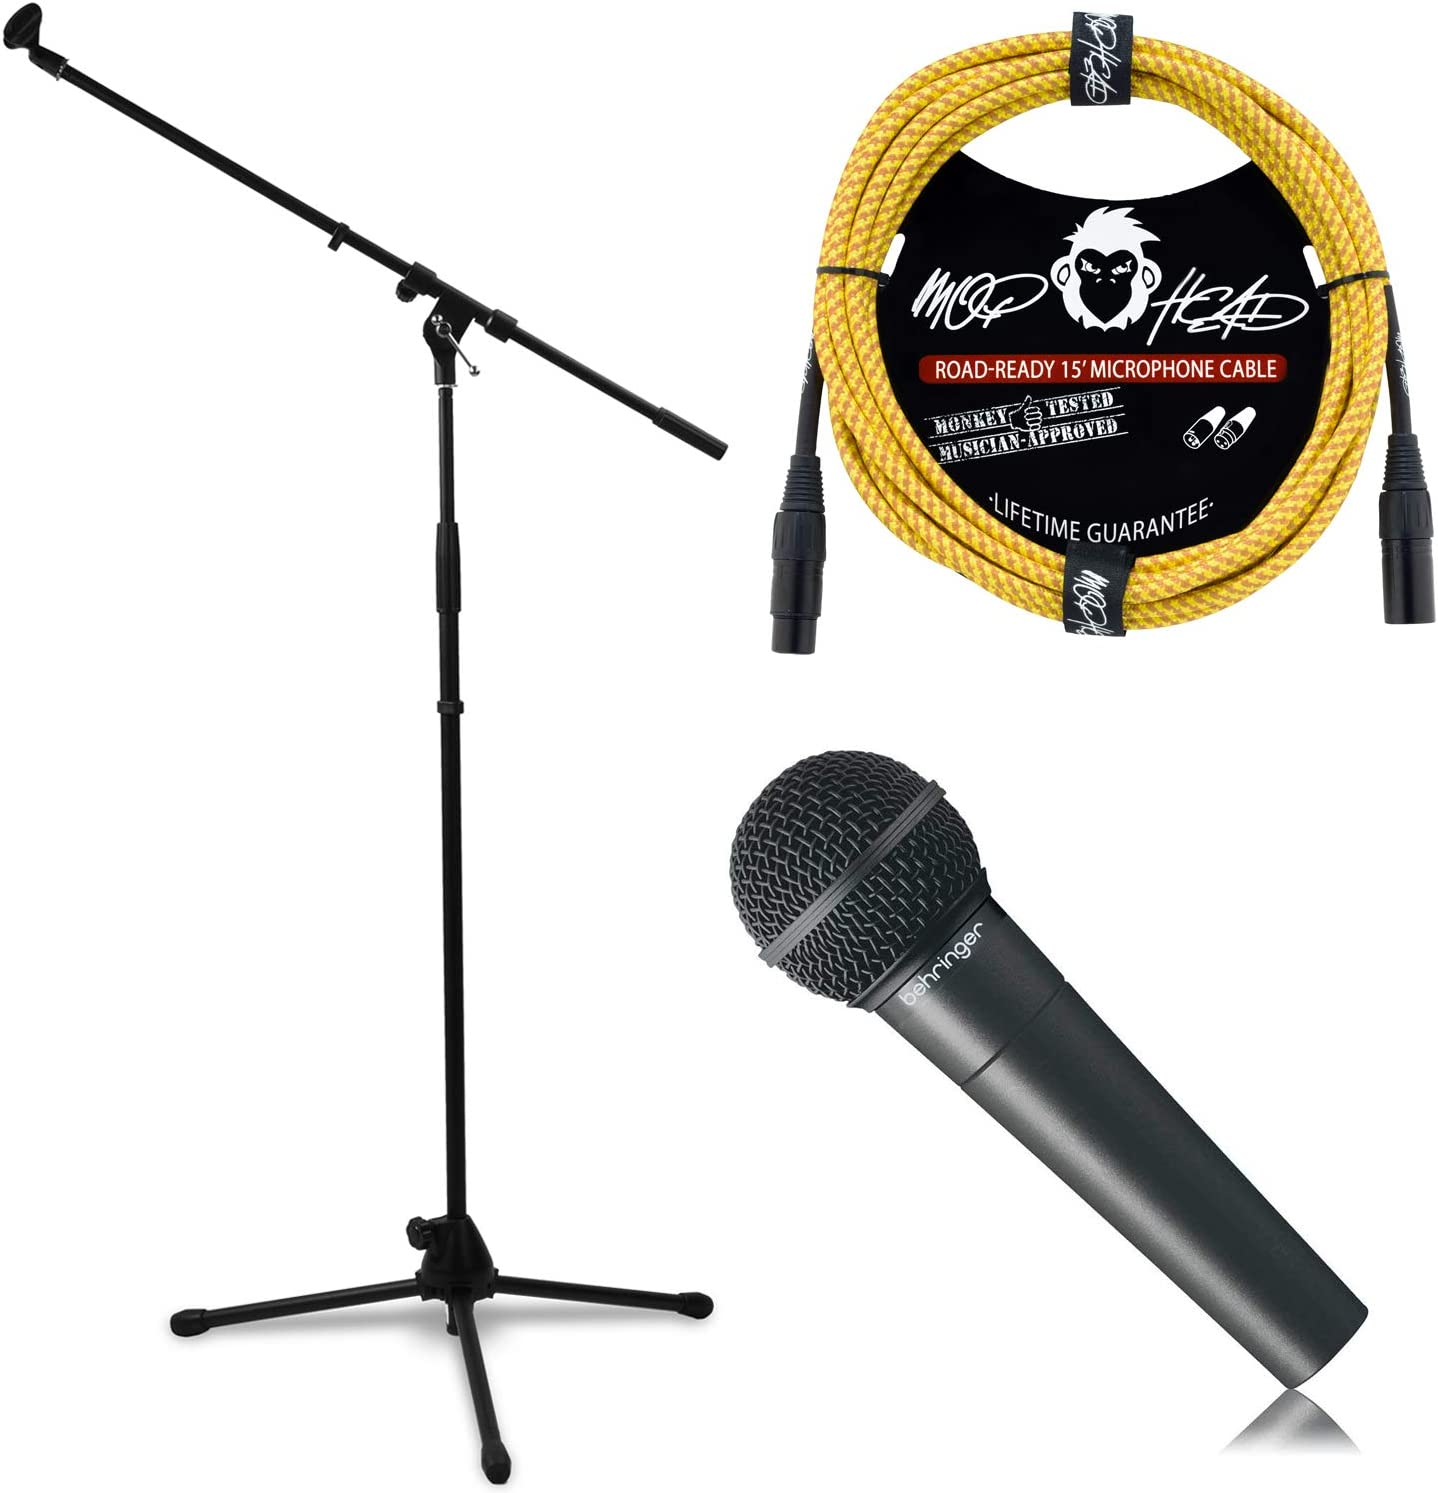 Behringer XM8500 Cardioid Dynamic Microphone Bundle with Mophead 66 Inch Road-Ready Metal Microphone Stand with 33 Inch Boom and Mophead 15 Braided Tweed XLR Mic Cable